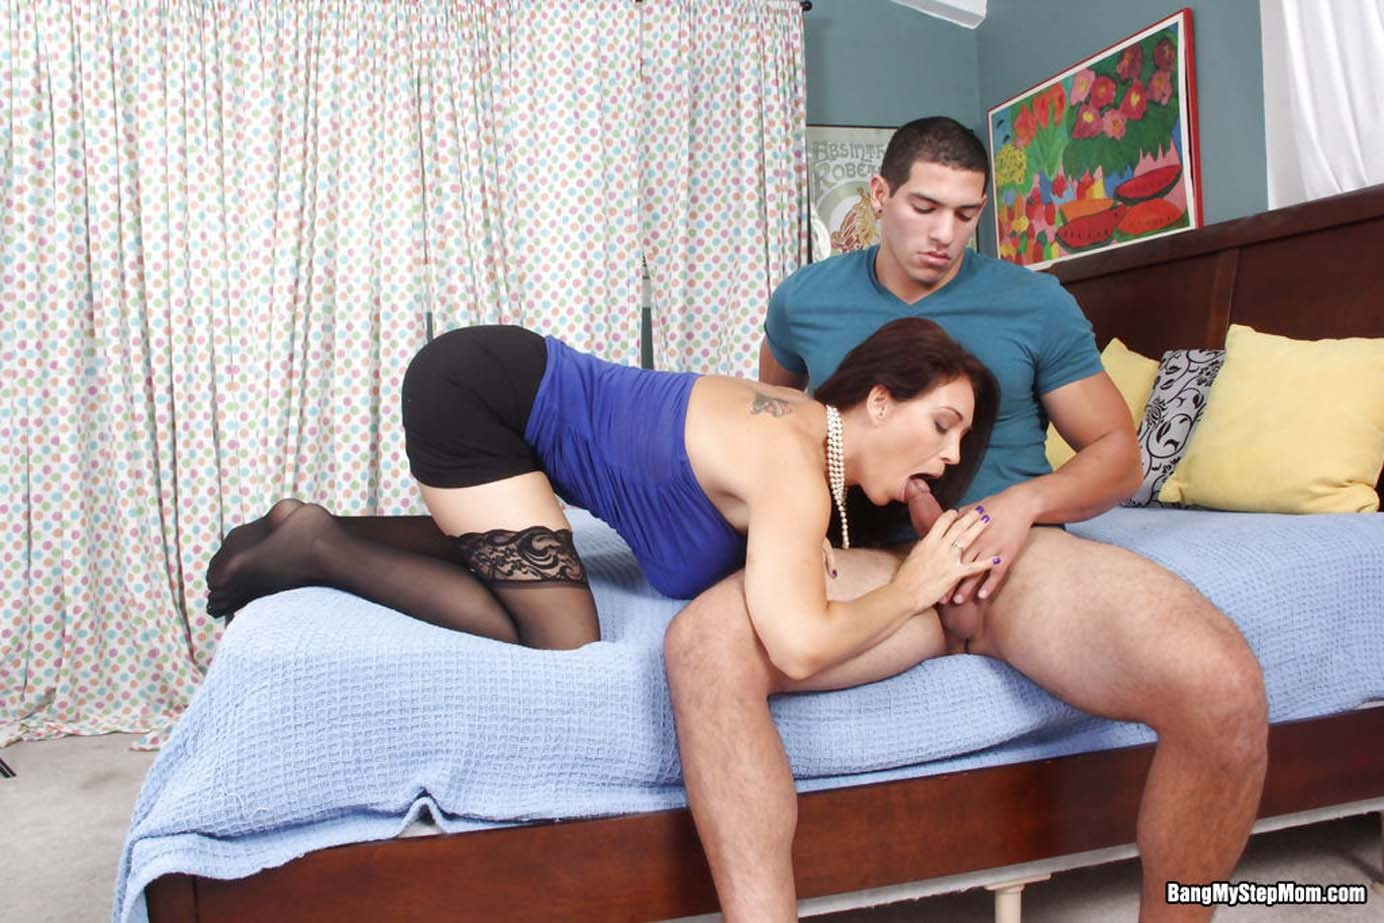 Stepmom charlee chase in action with her stepson